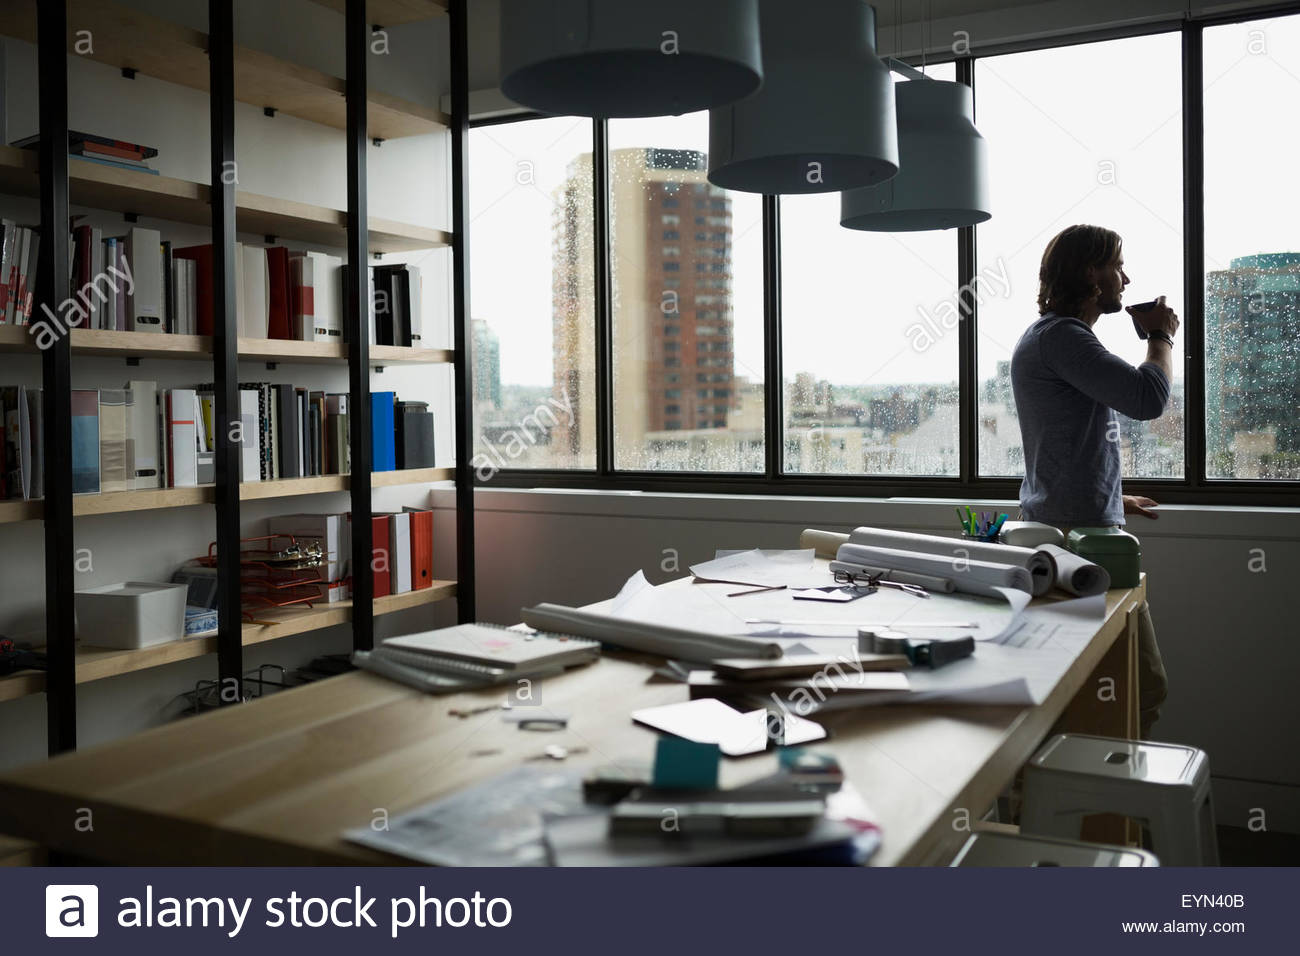 Architect drinking coffee at rainy office window - Stock Image